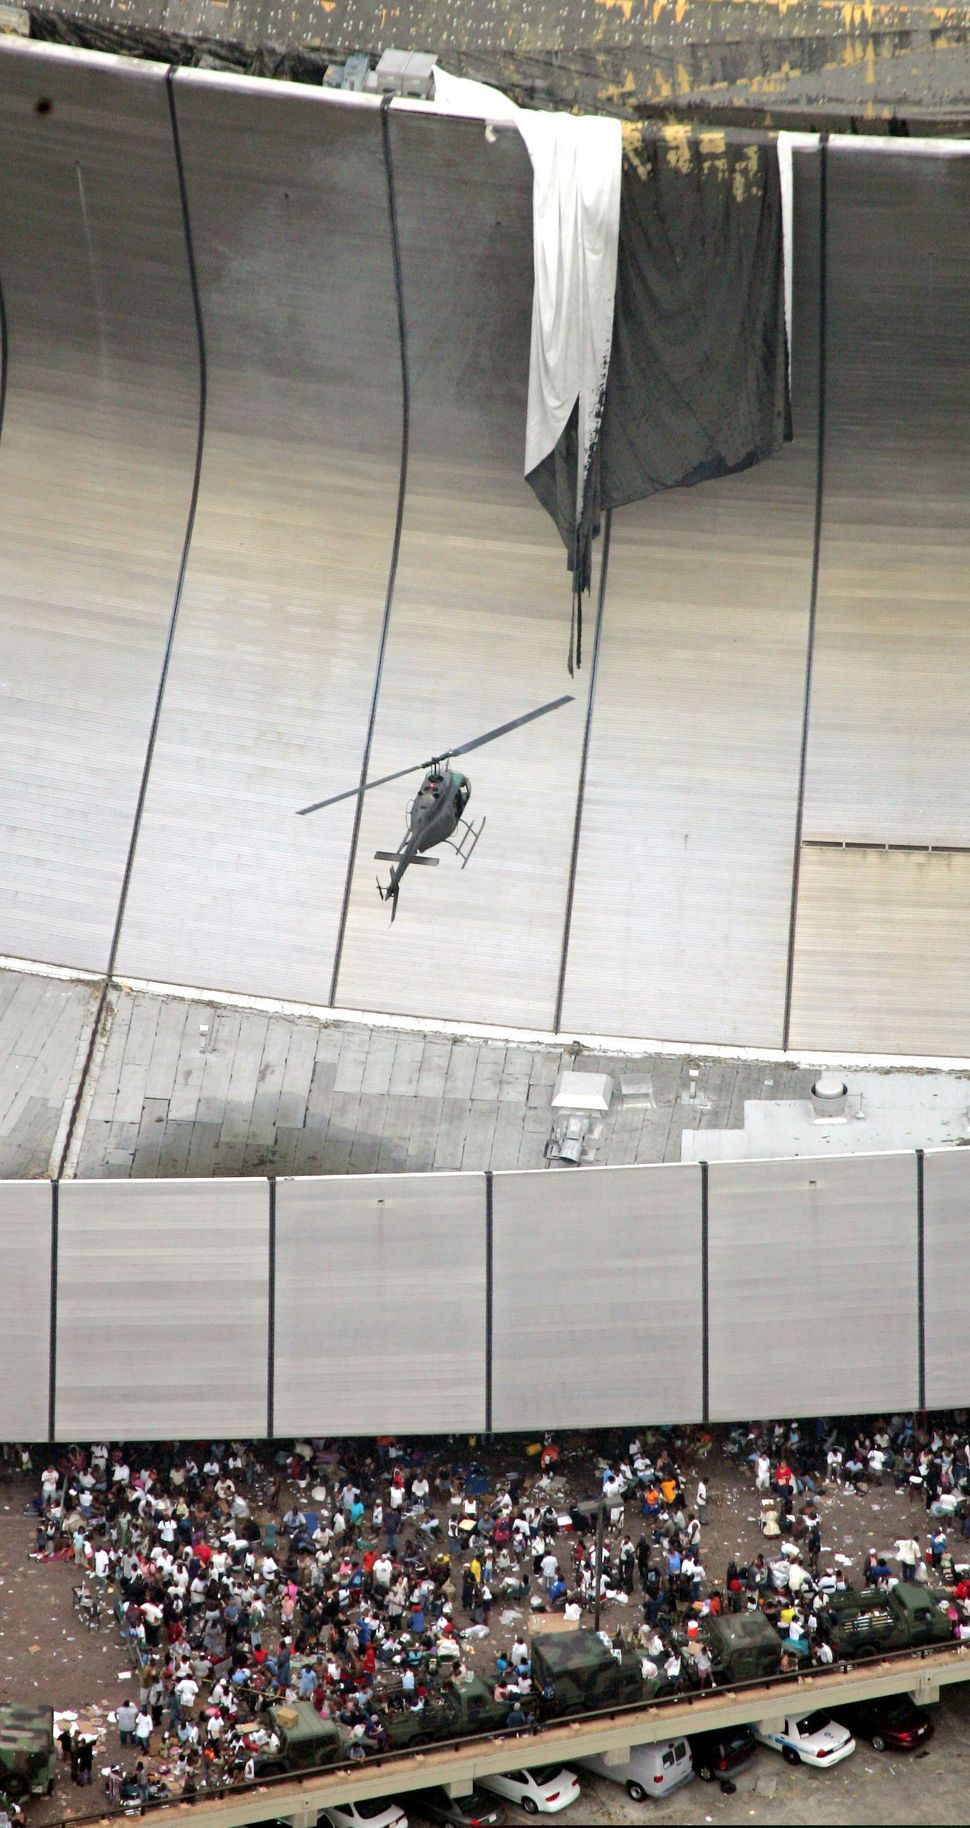 A helicopter flies over residents waiting to be evacuated from the Louisiana Superdome in New Orleans, Sept. 1, 2005.